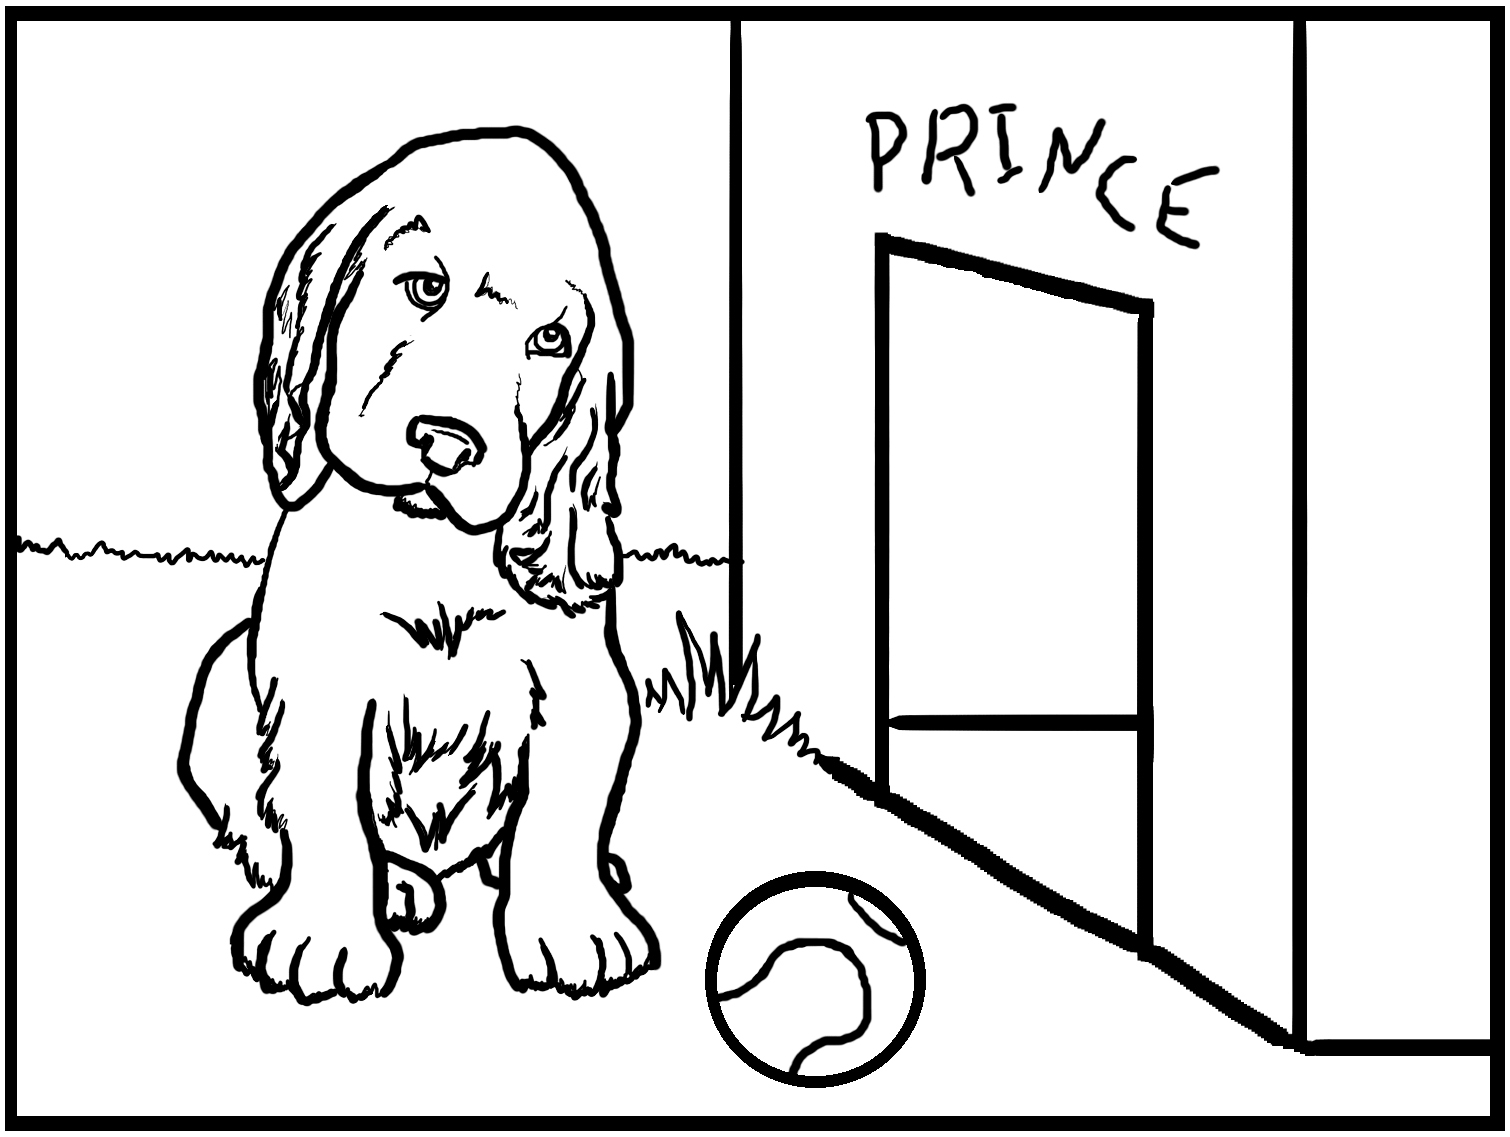 Coloring Pages For Kids Printable : Free printable dog coloring pages for kids